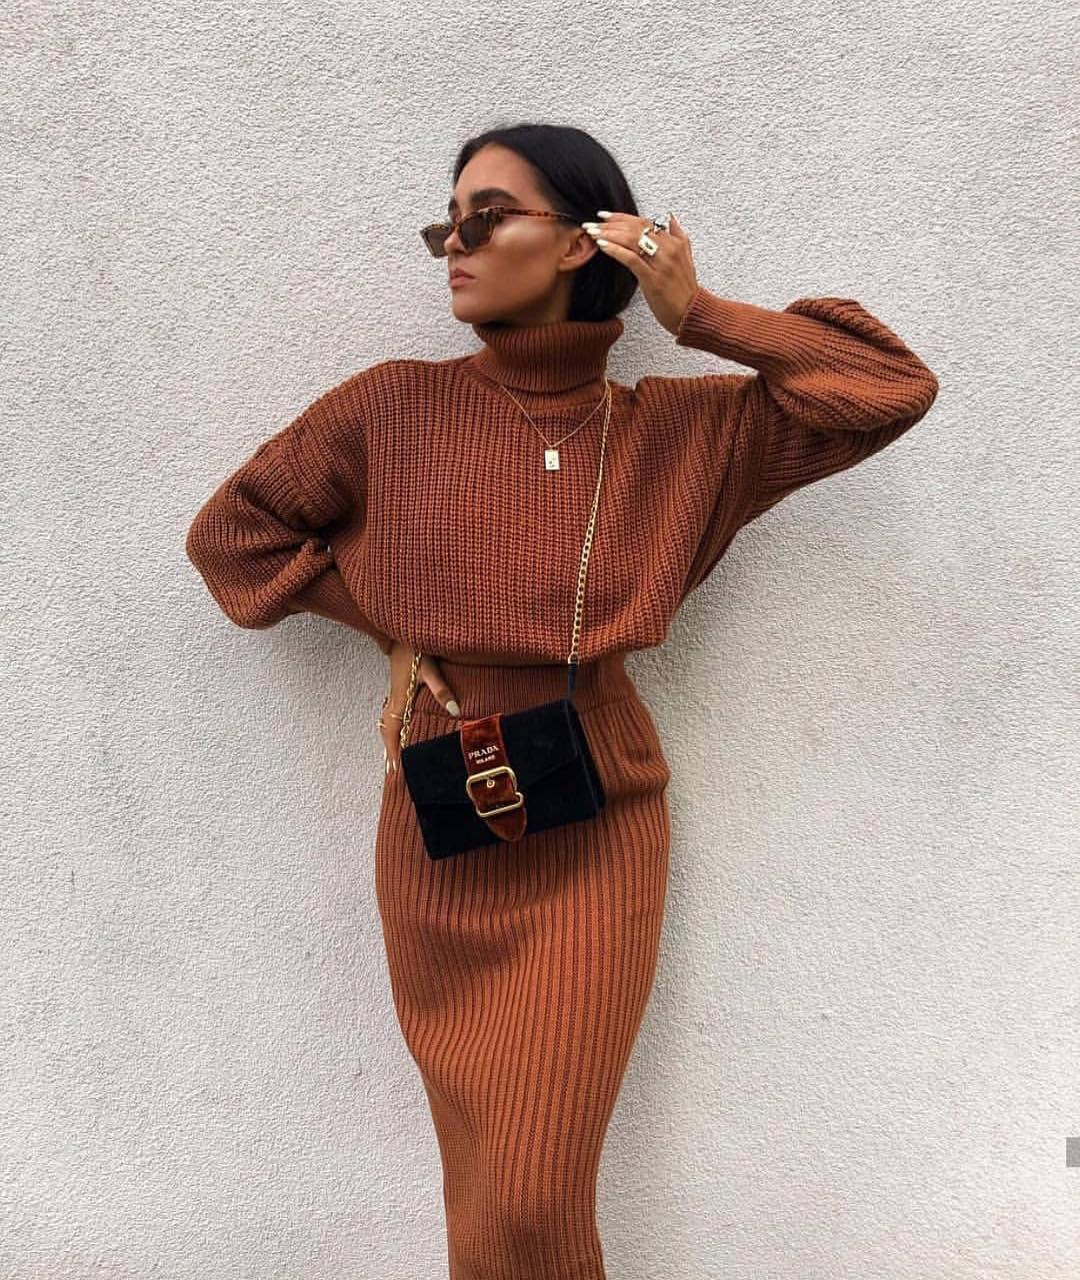 Two Piece Knitted Dress In Maxi Length For Fall 2019